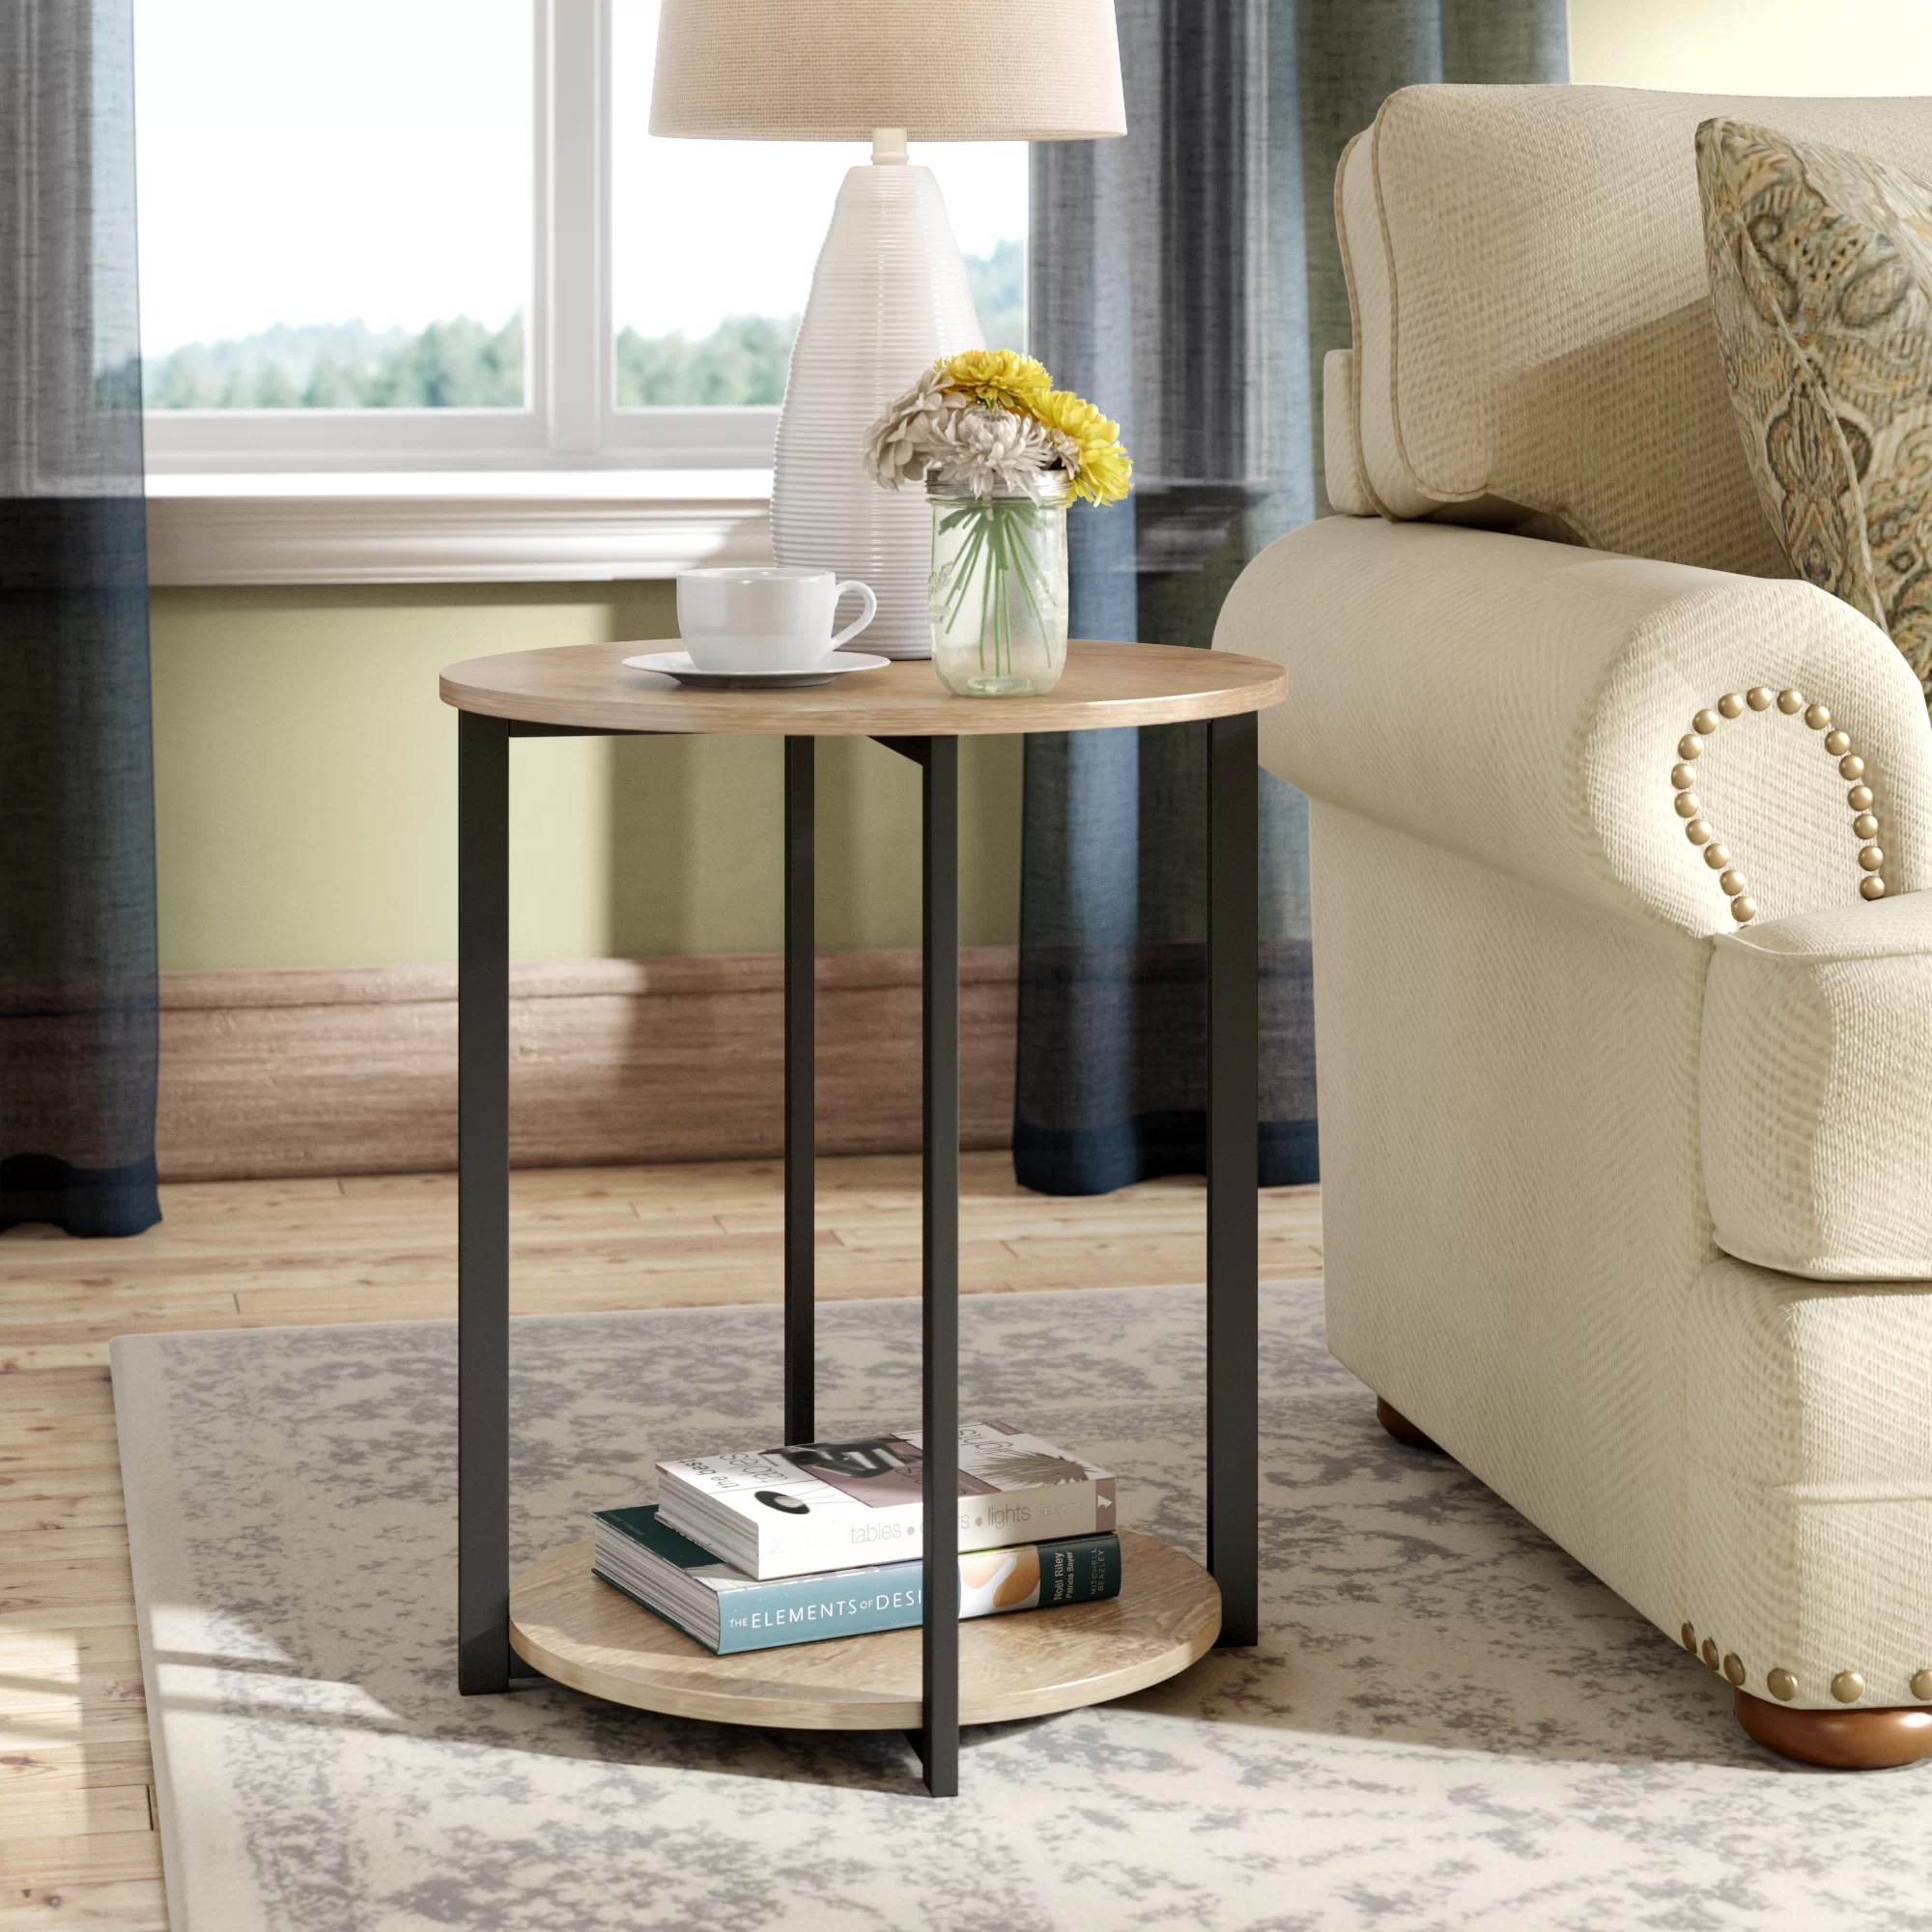 End Table For Living Room Ryanda Low End Table